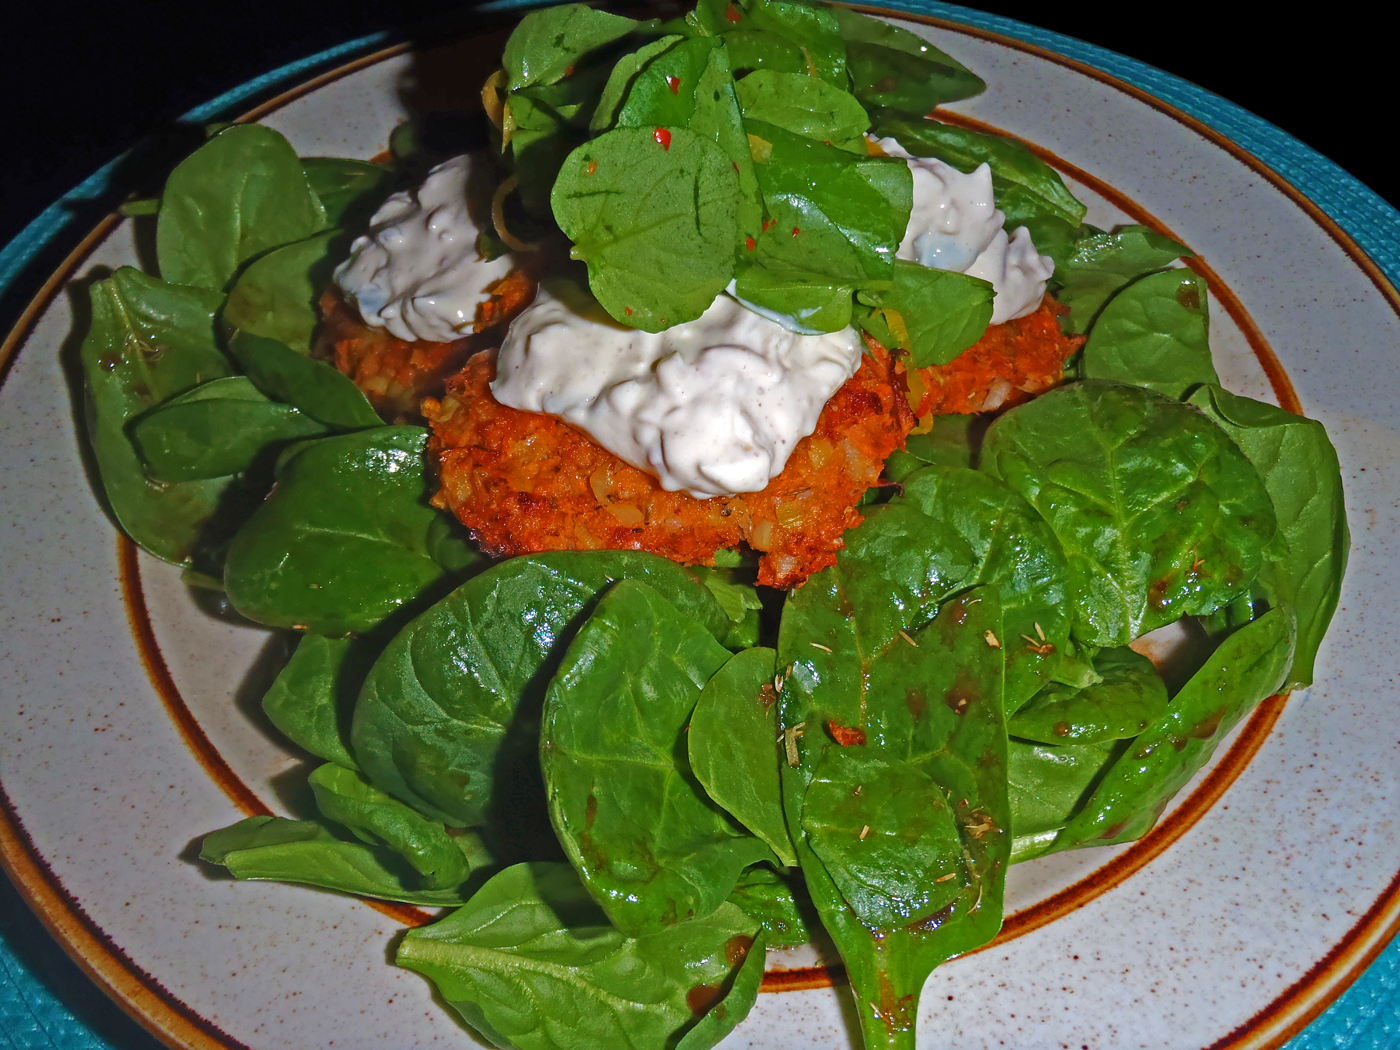 Rustic Smoked Salmon Cakes on Salad Greens with Garlic Tartar Sauce & Lemony Watercress